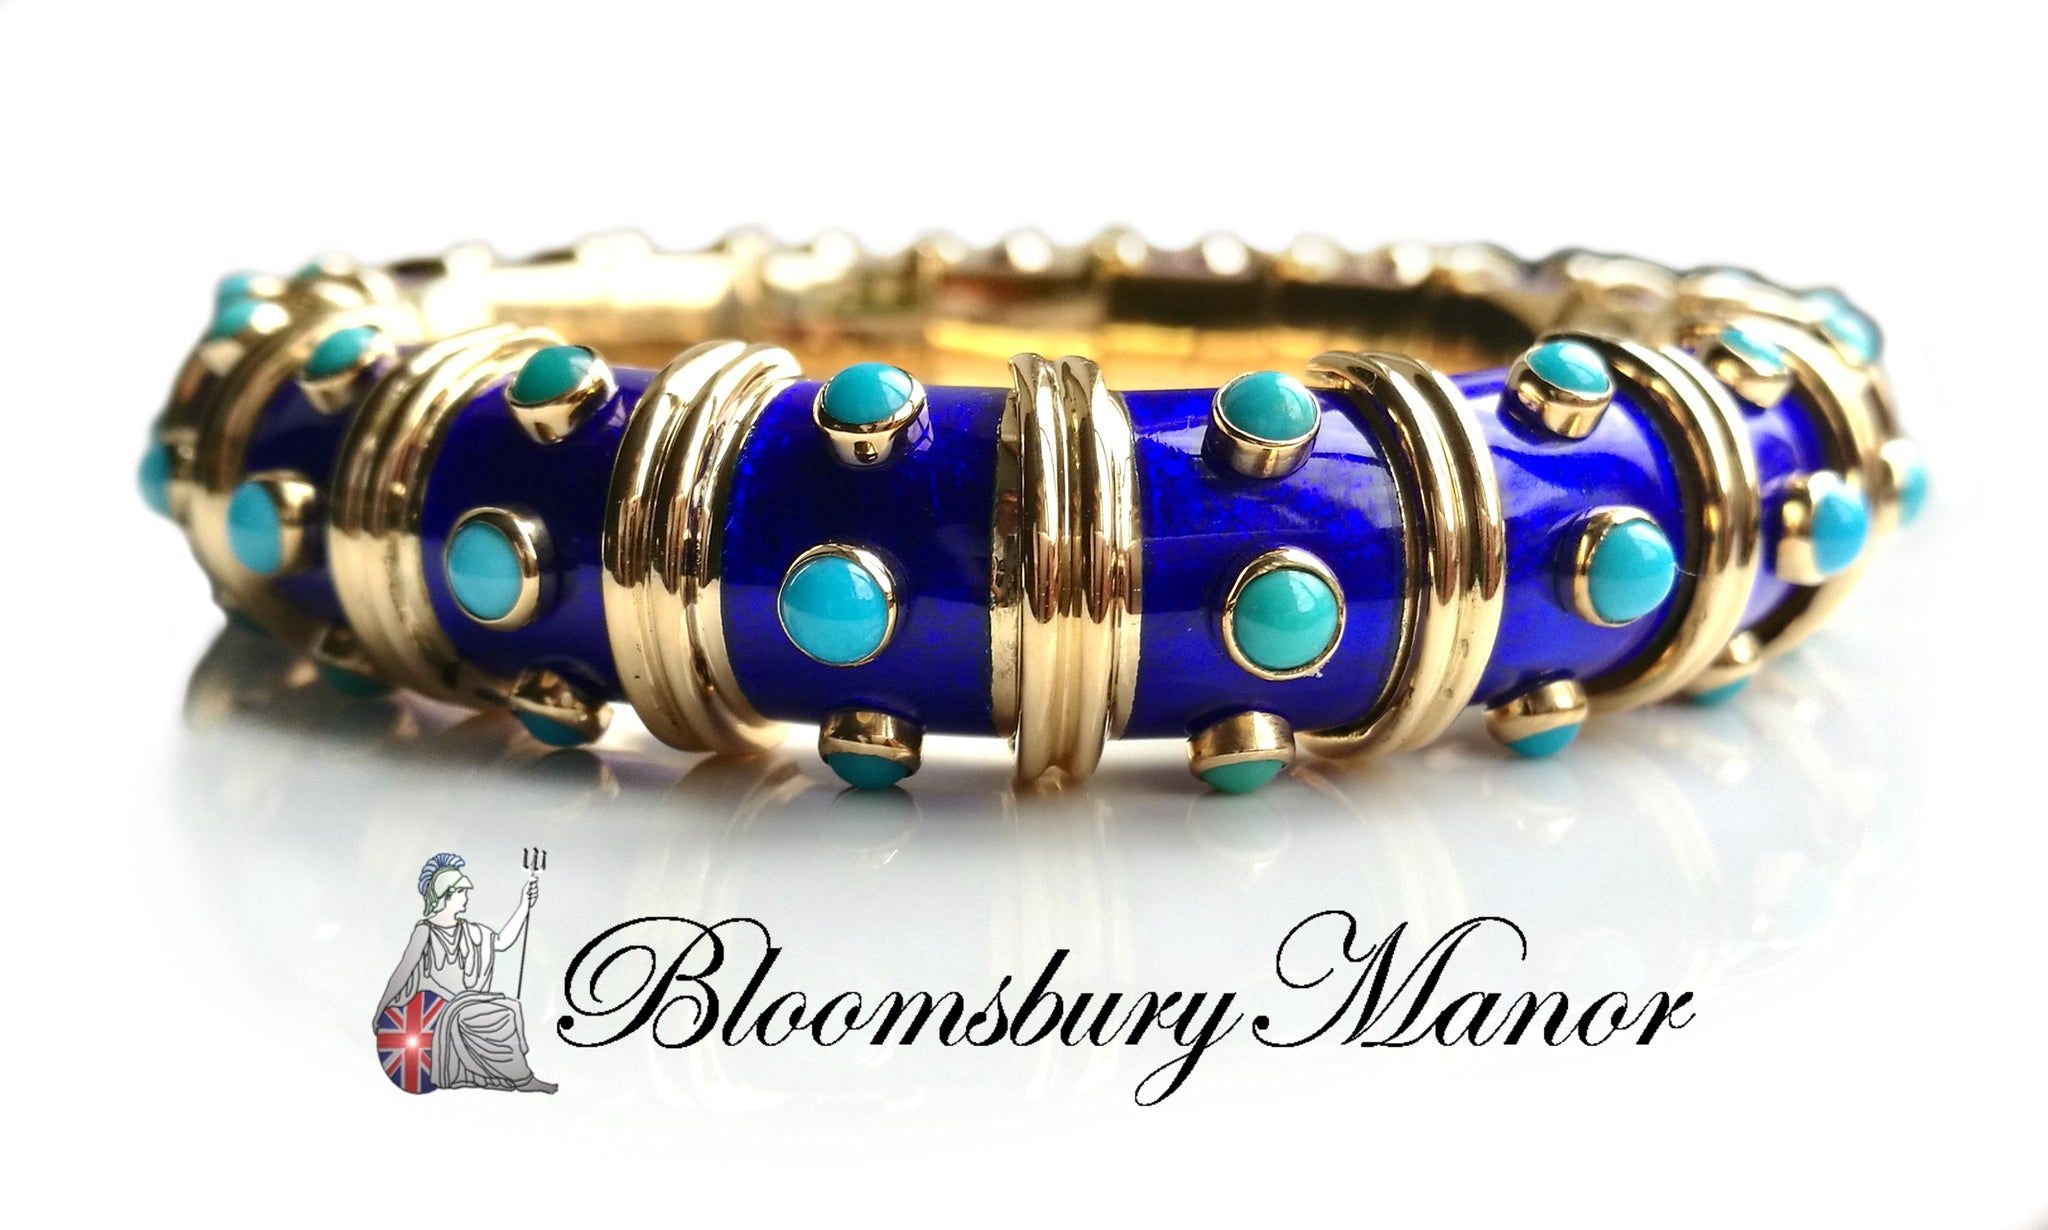 6687b1bca Vintage 1960s Tiffany & Co. Schlumberger Turquoise & Blue Paillonne En -  Bloomsbury Manor Ltd